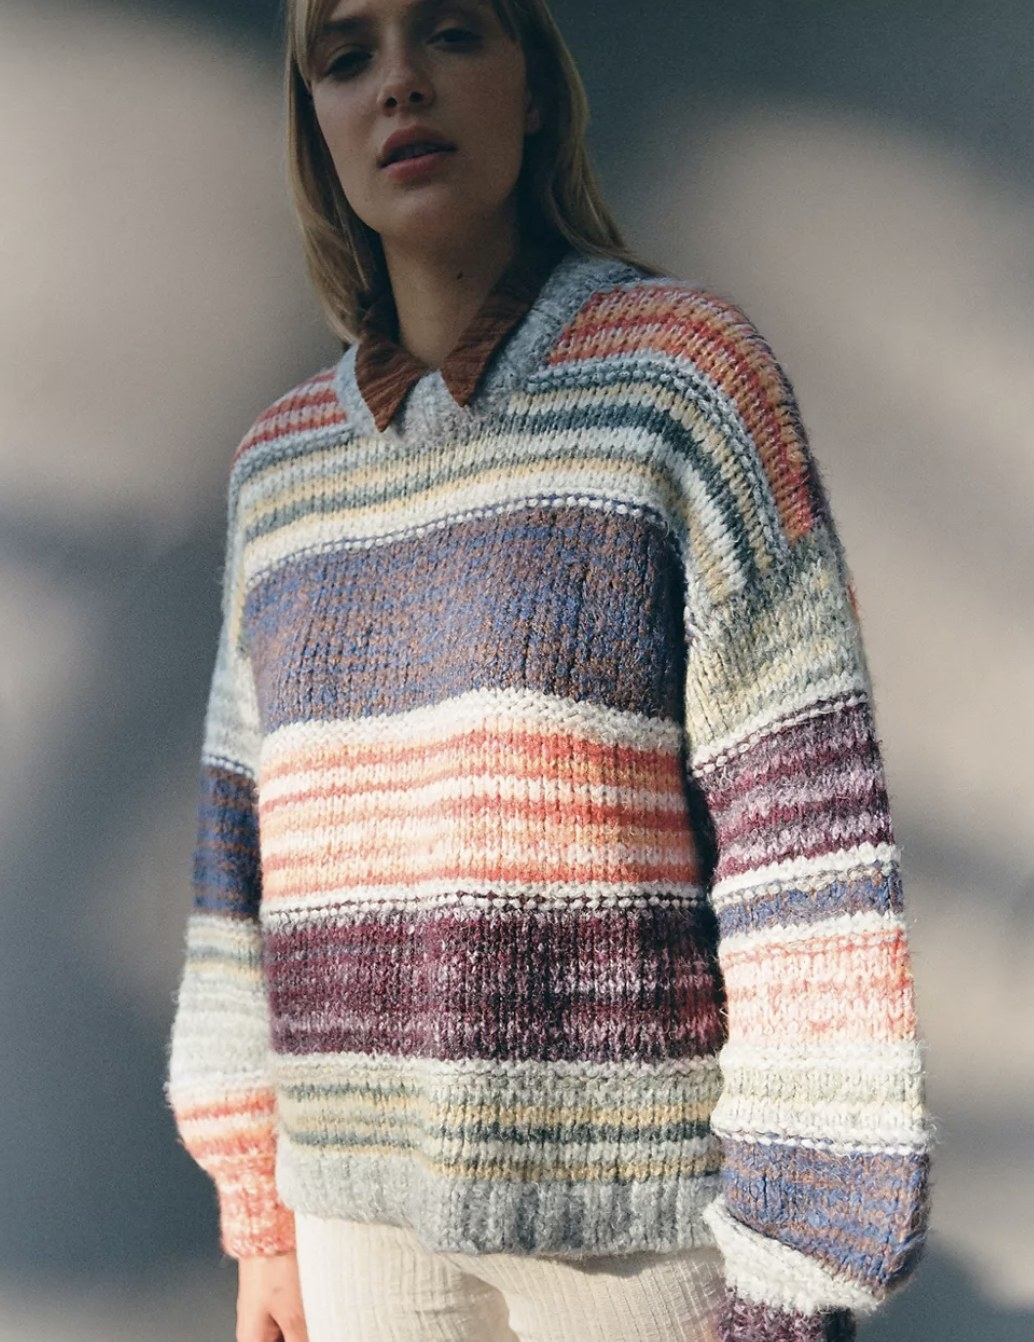 Model is wearing a knit sweat in multiple striped colors